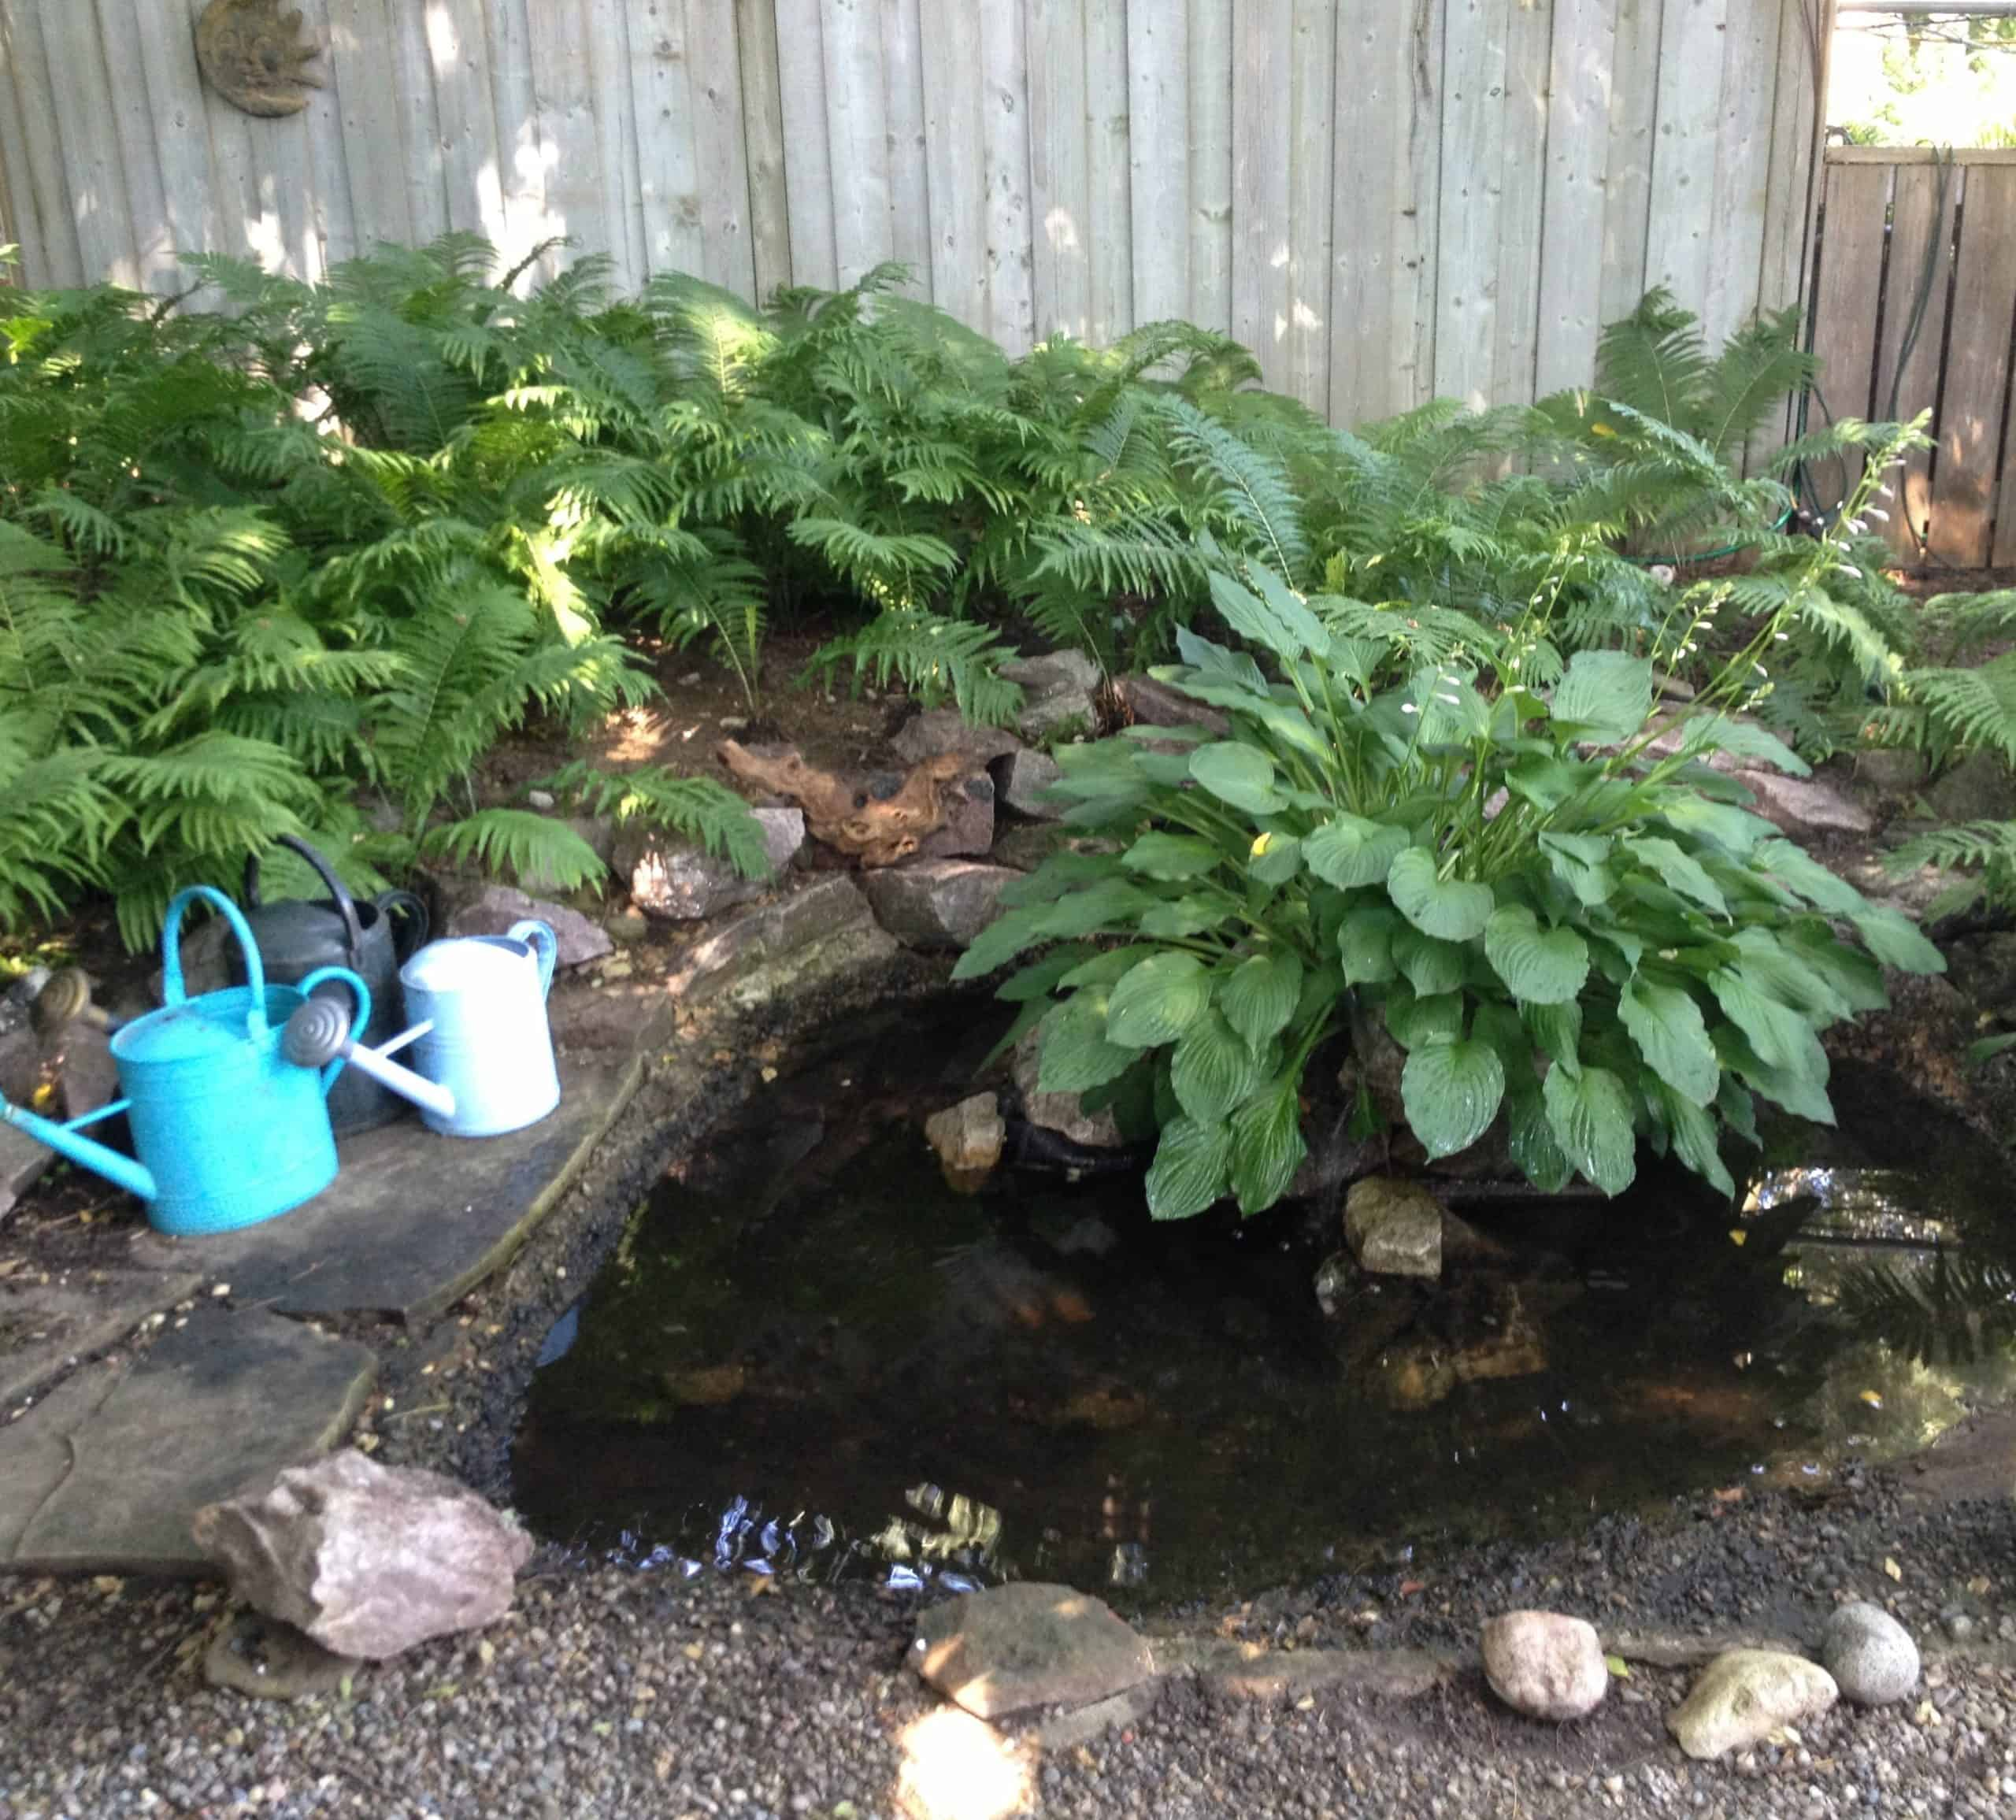 I liked this pond, with a hosta growing in the middle.